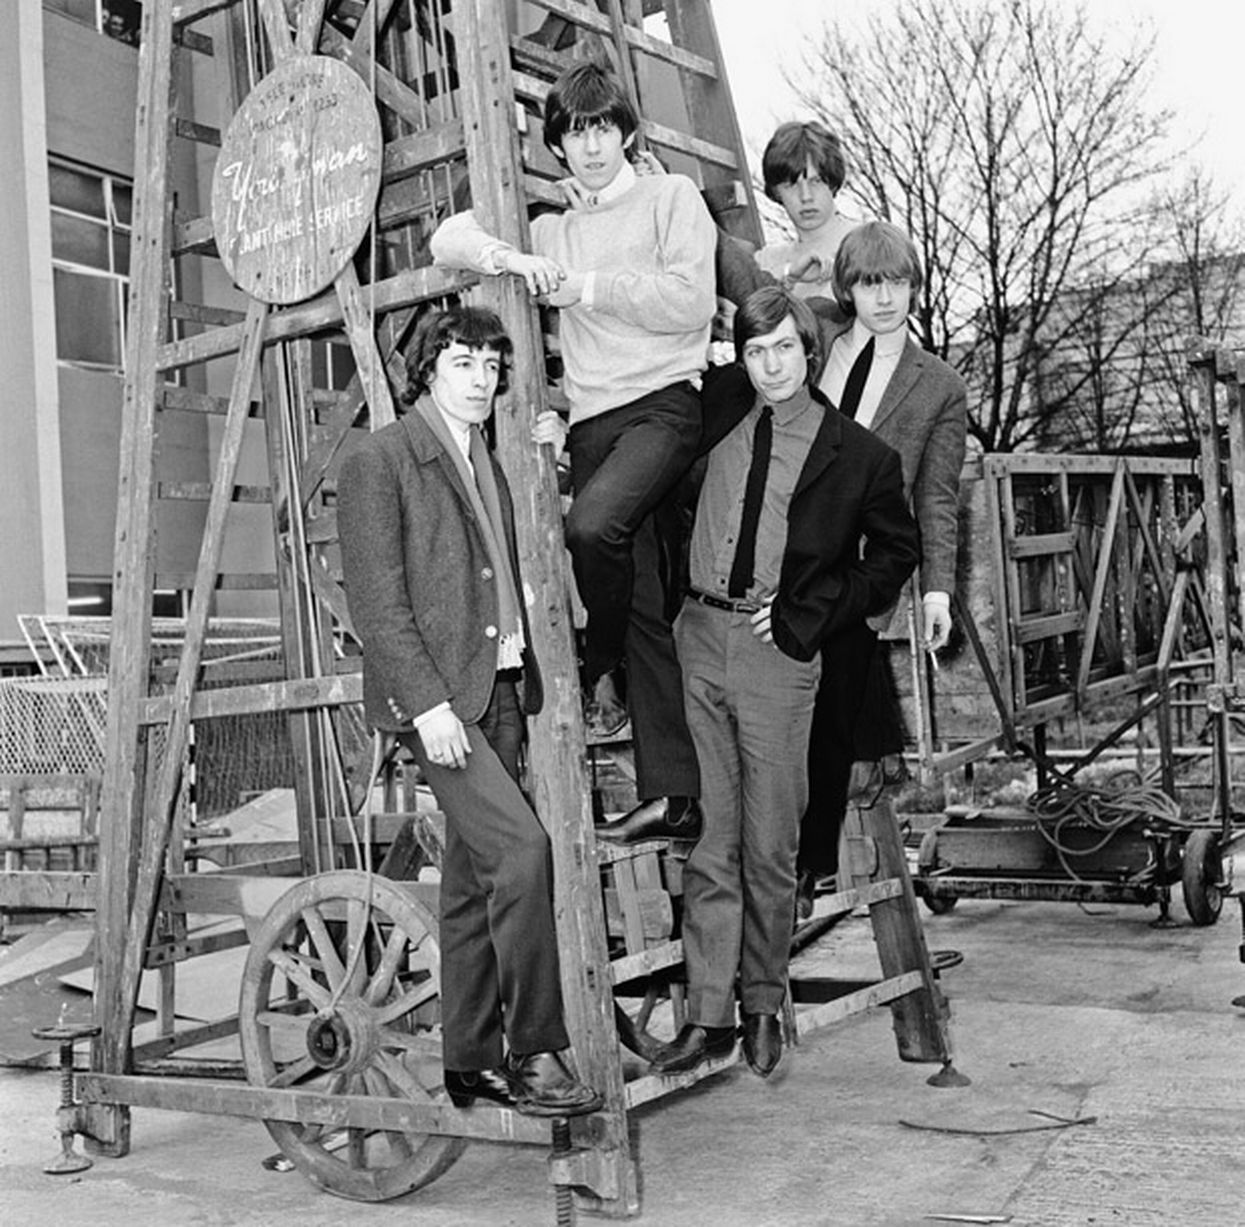 The Rolling Stones at the Mad Mod Ball. l-r Bill Wyman, Keith Richards, Charlie Watts, Mick Jagger and Brian Jones. 8th September 1964